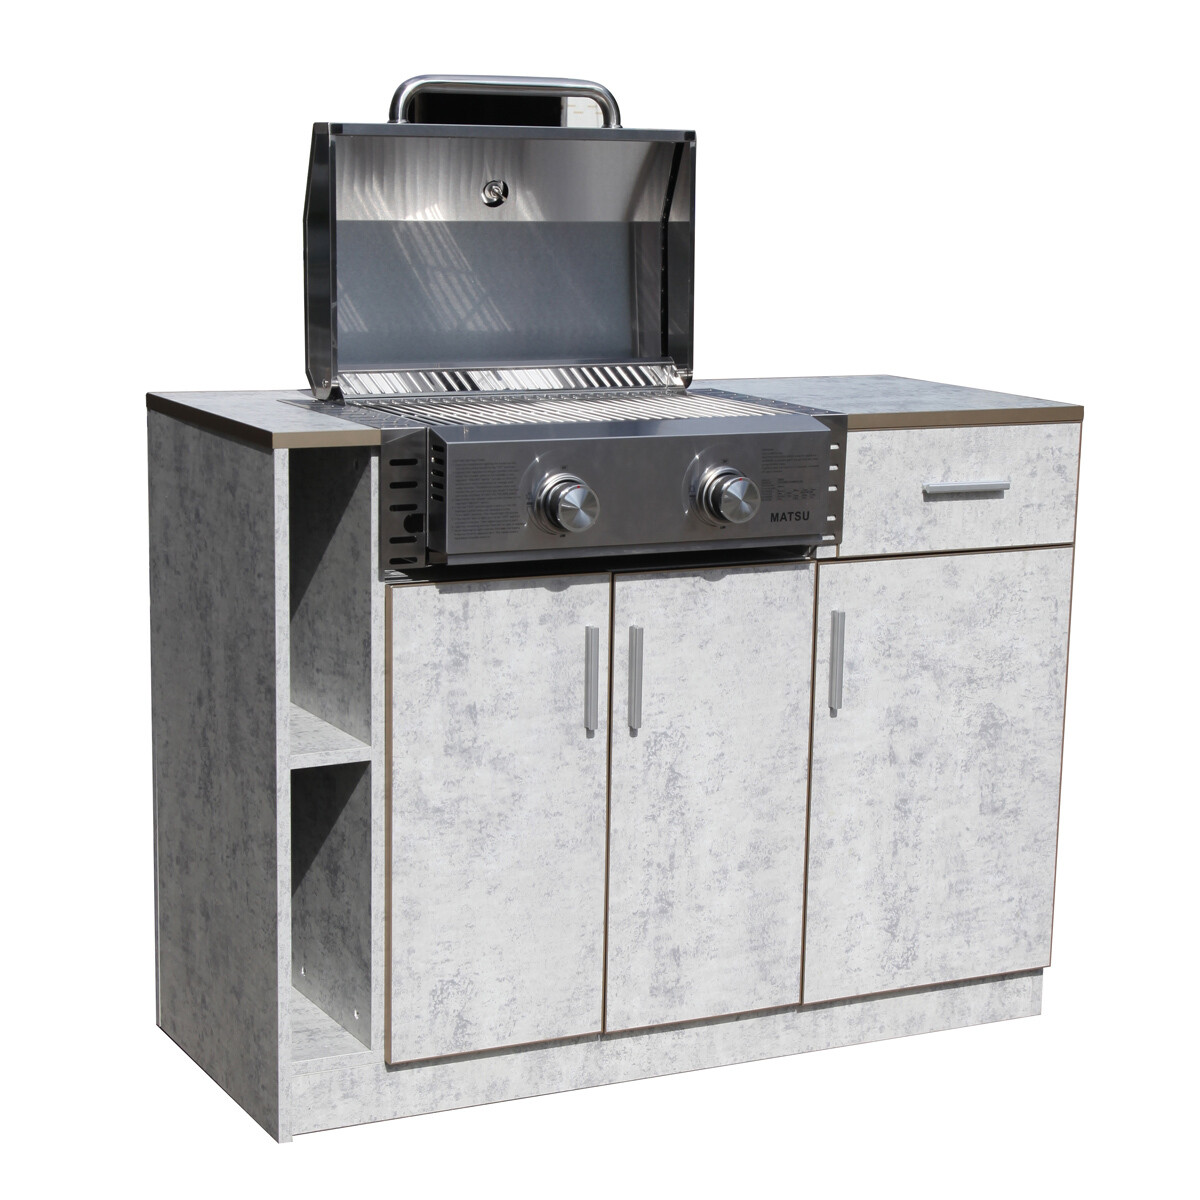 Contemporary outdoor kitchen Island KI02